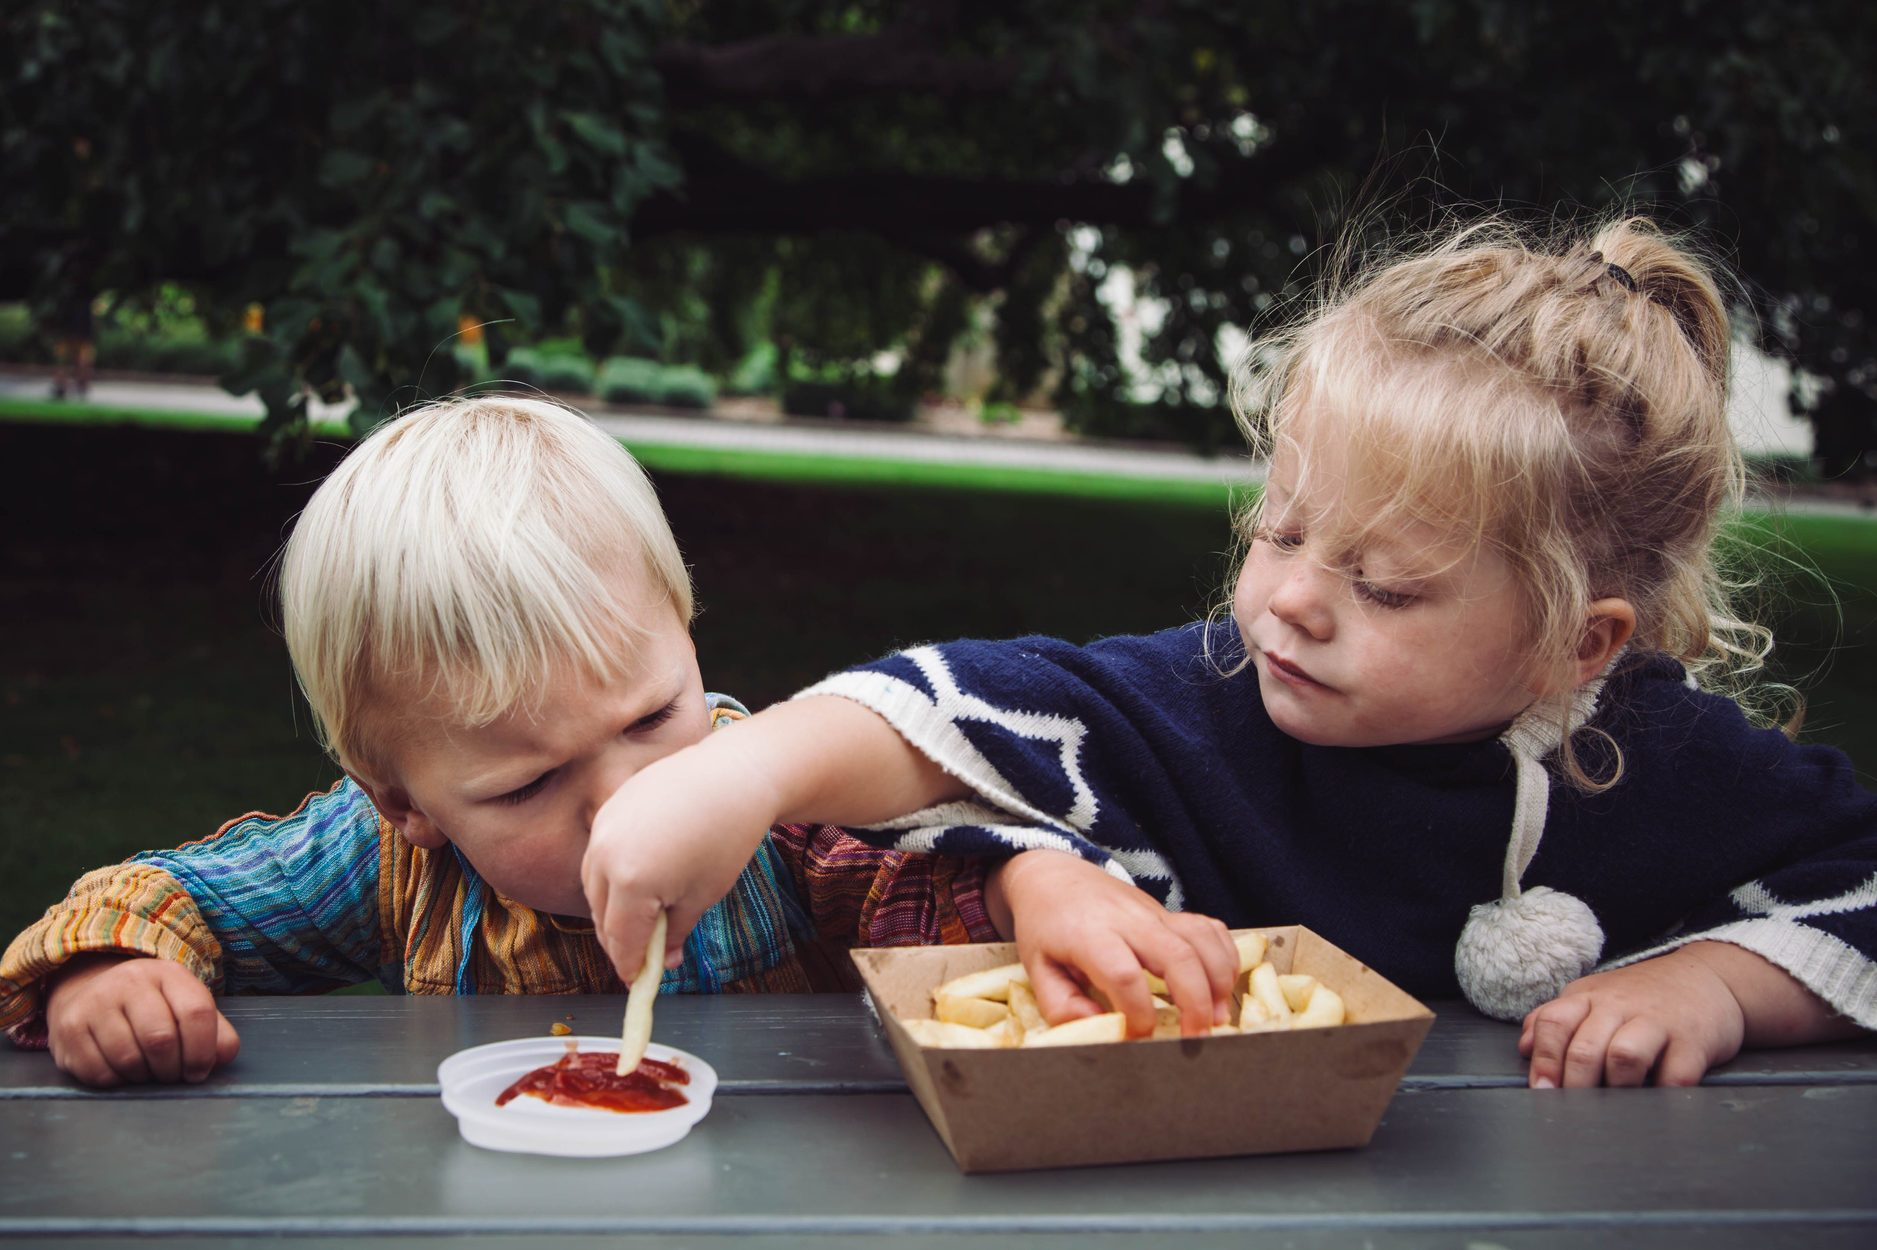 Two toddlers sharing hot chips and tomato sauce at a picnic in the park